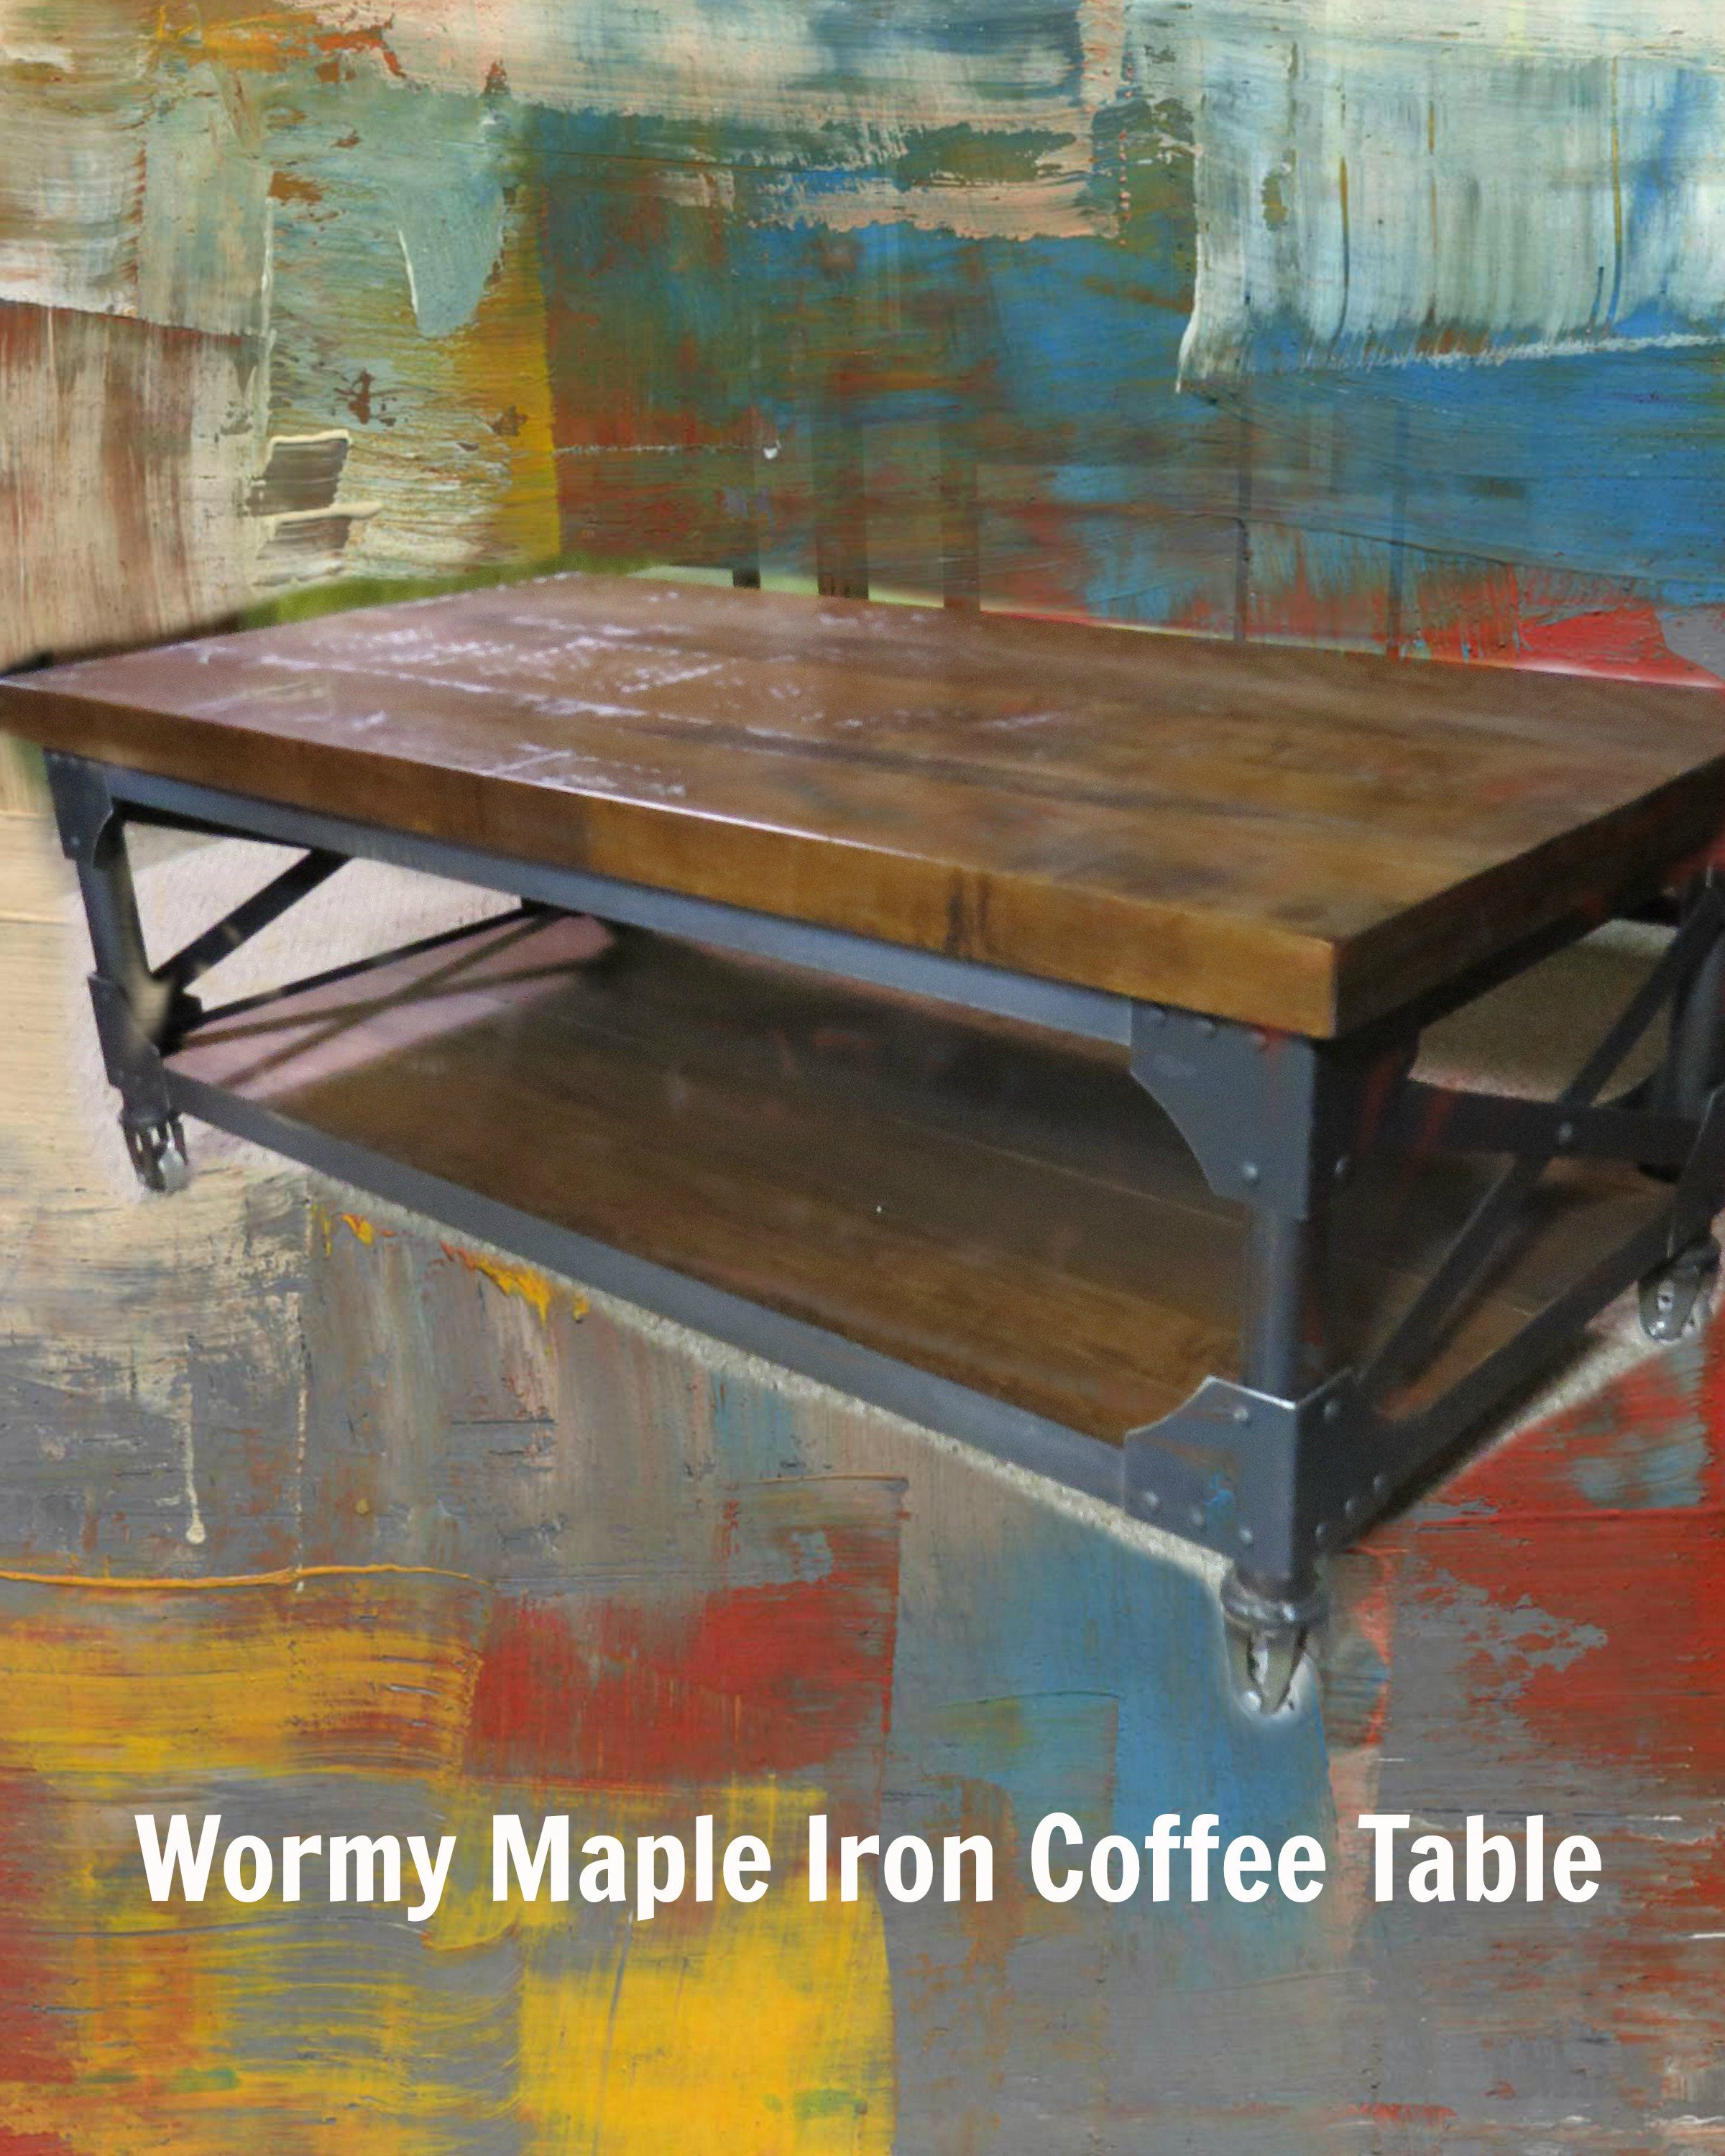 Wormy Maple Coffee Table with Iron Accents Sale now and ready